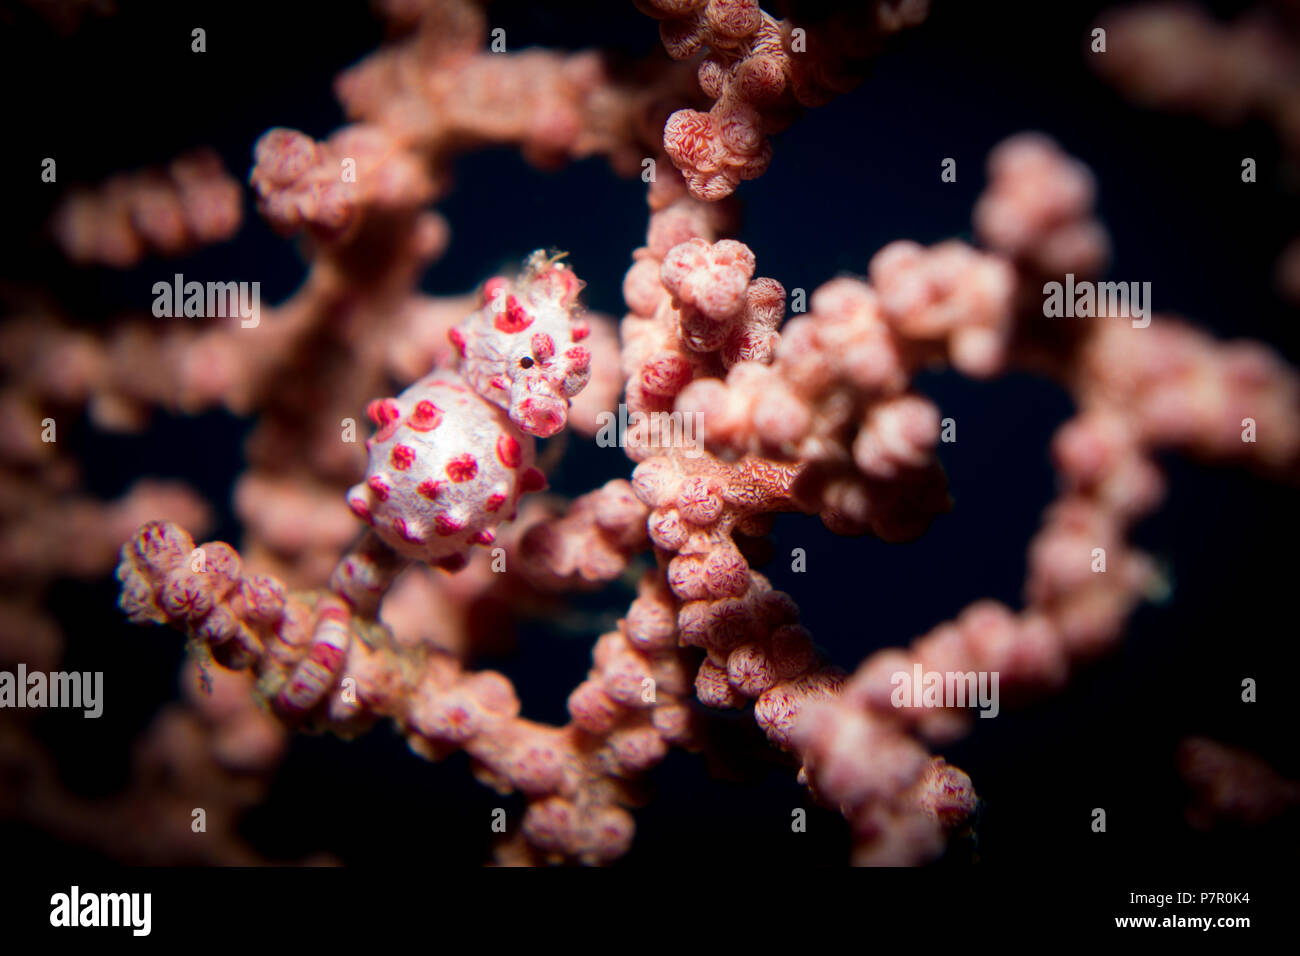 A Pygmy Seahorse - Hippocampus bargibanti - in its host gorgonion sea fan coral. Taken in Komodo National Park, Indonesia. - Stock Image